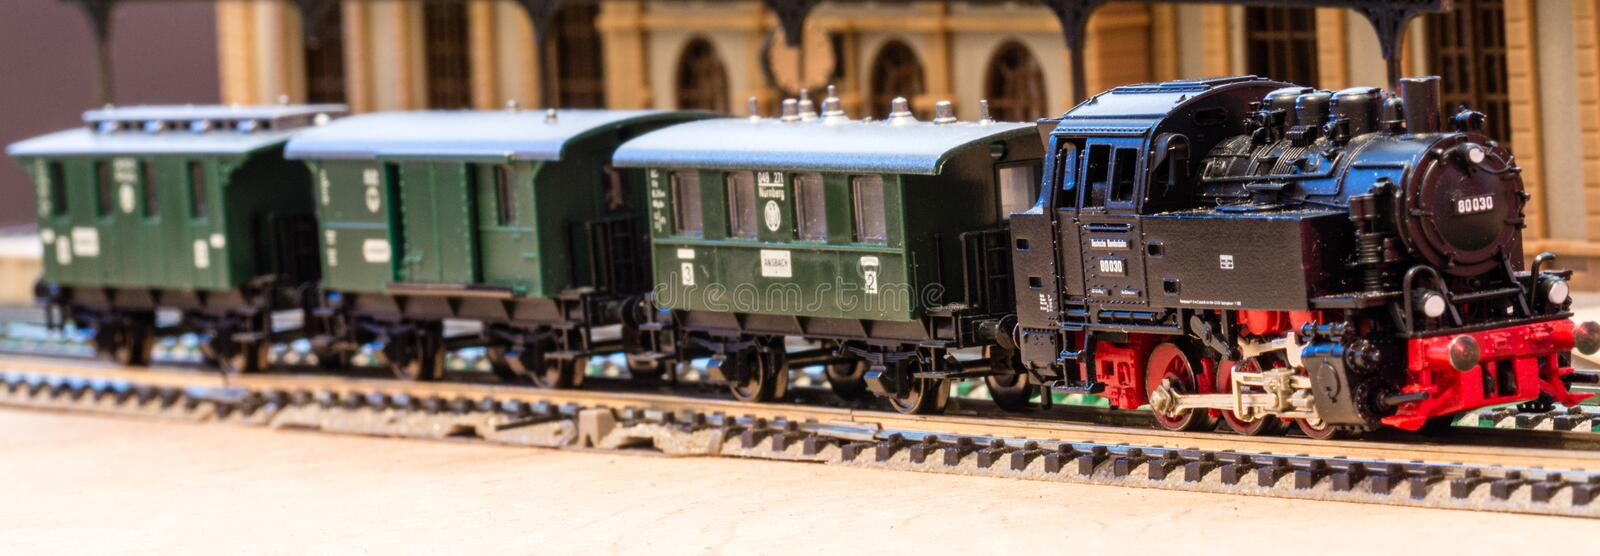 Old model train in front of a toy station stock images